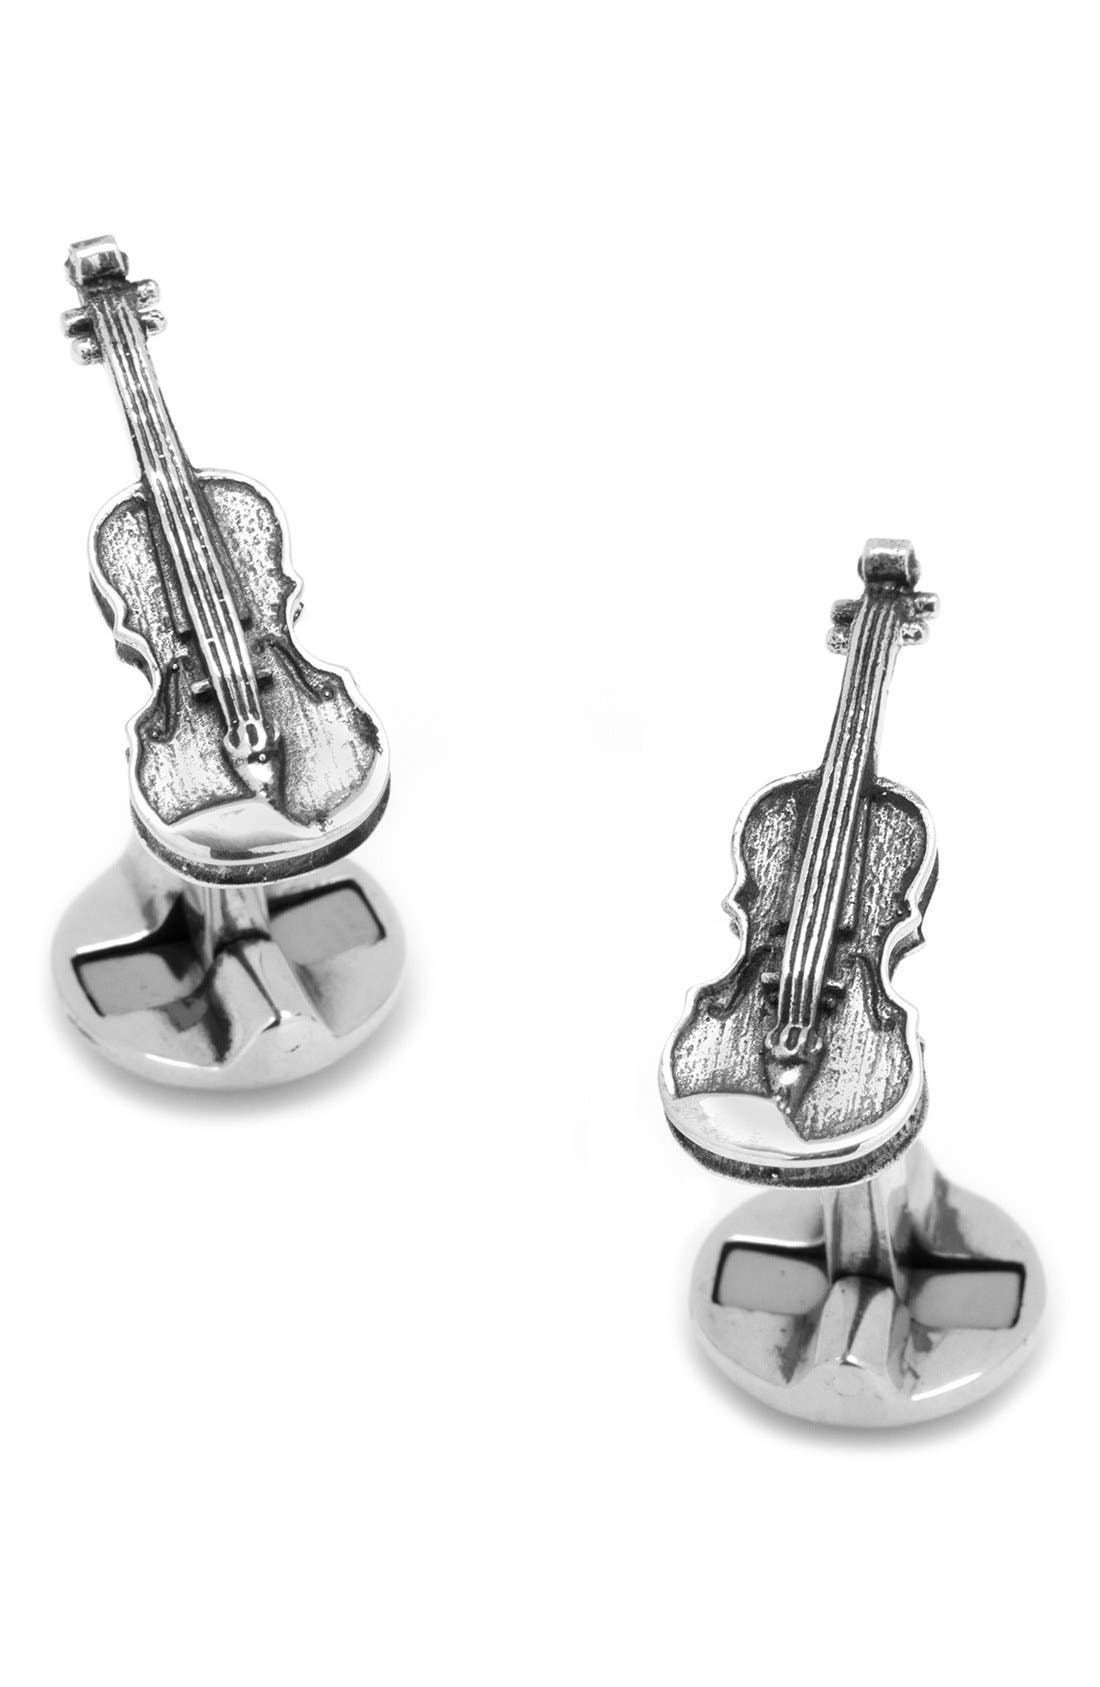 OX AND BULL TRADING CO. Violin Cuff Links